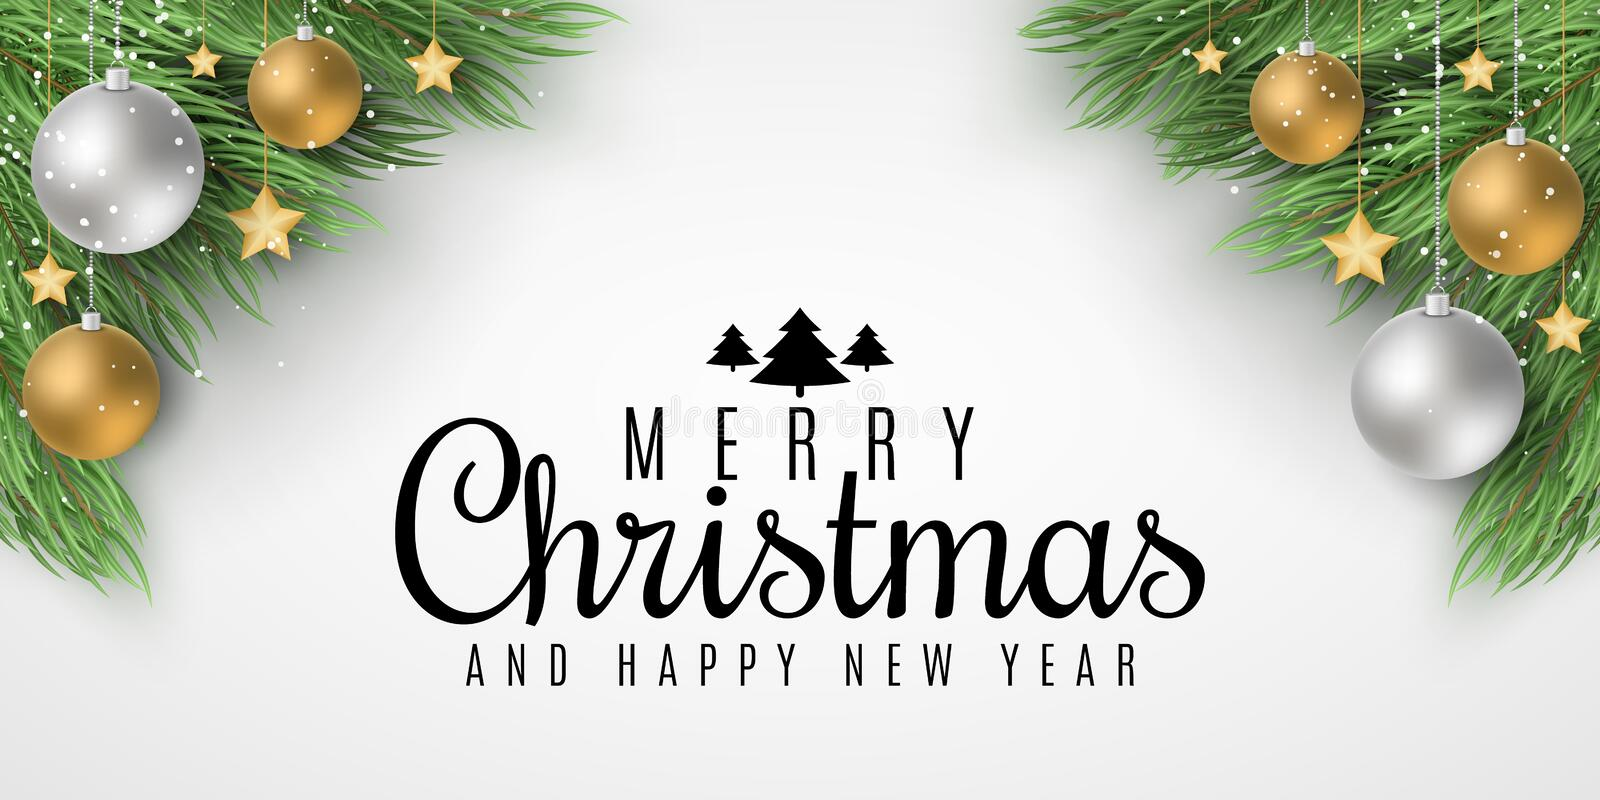 Brochure for Merry Christmas and Happy New Year. Fir tree with festive balls and golden stars. Greeting card. Beautiful lettering royalty free stock photo